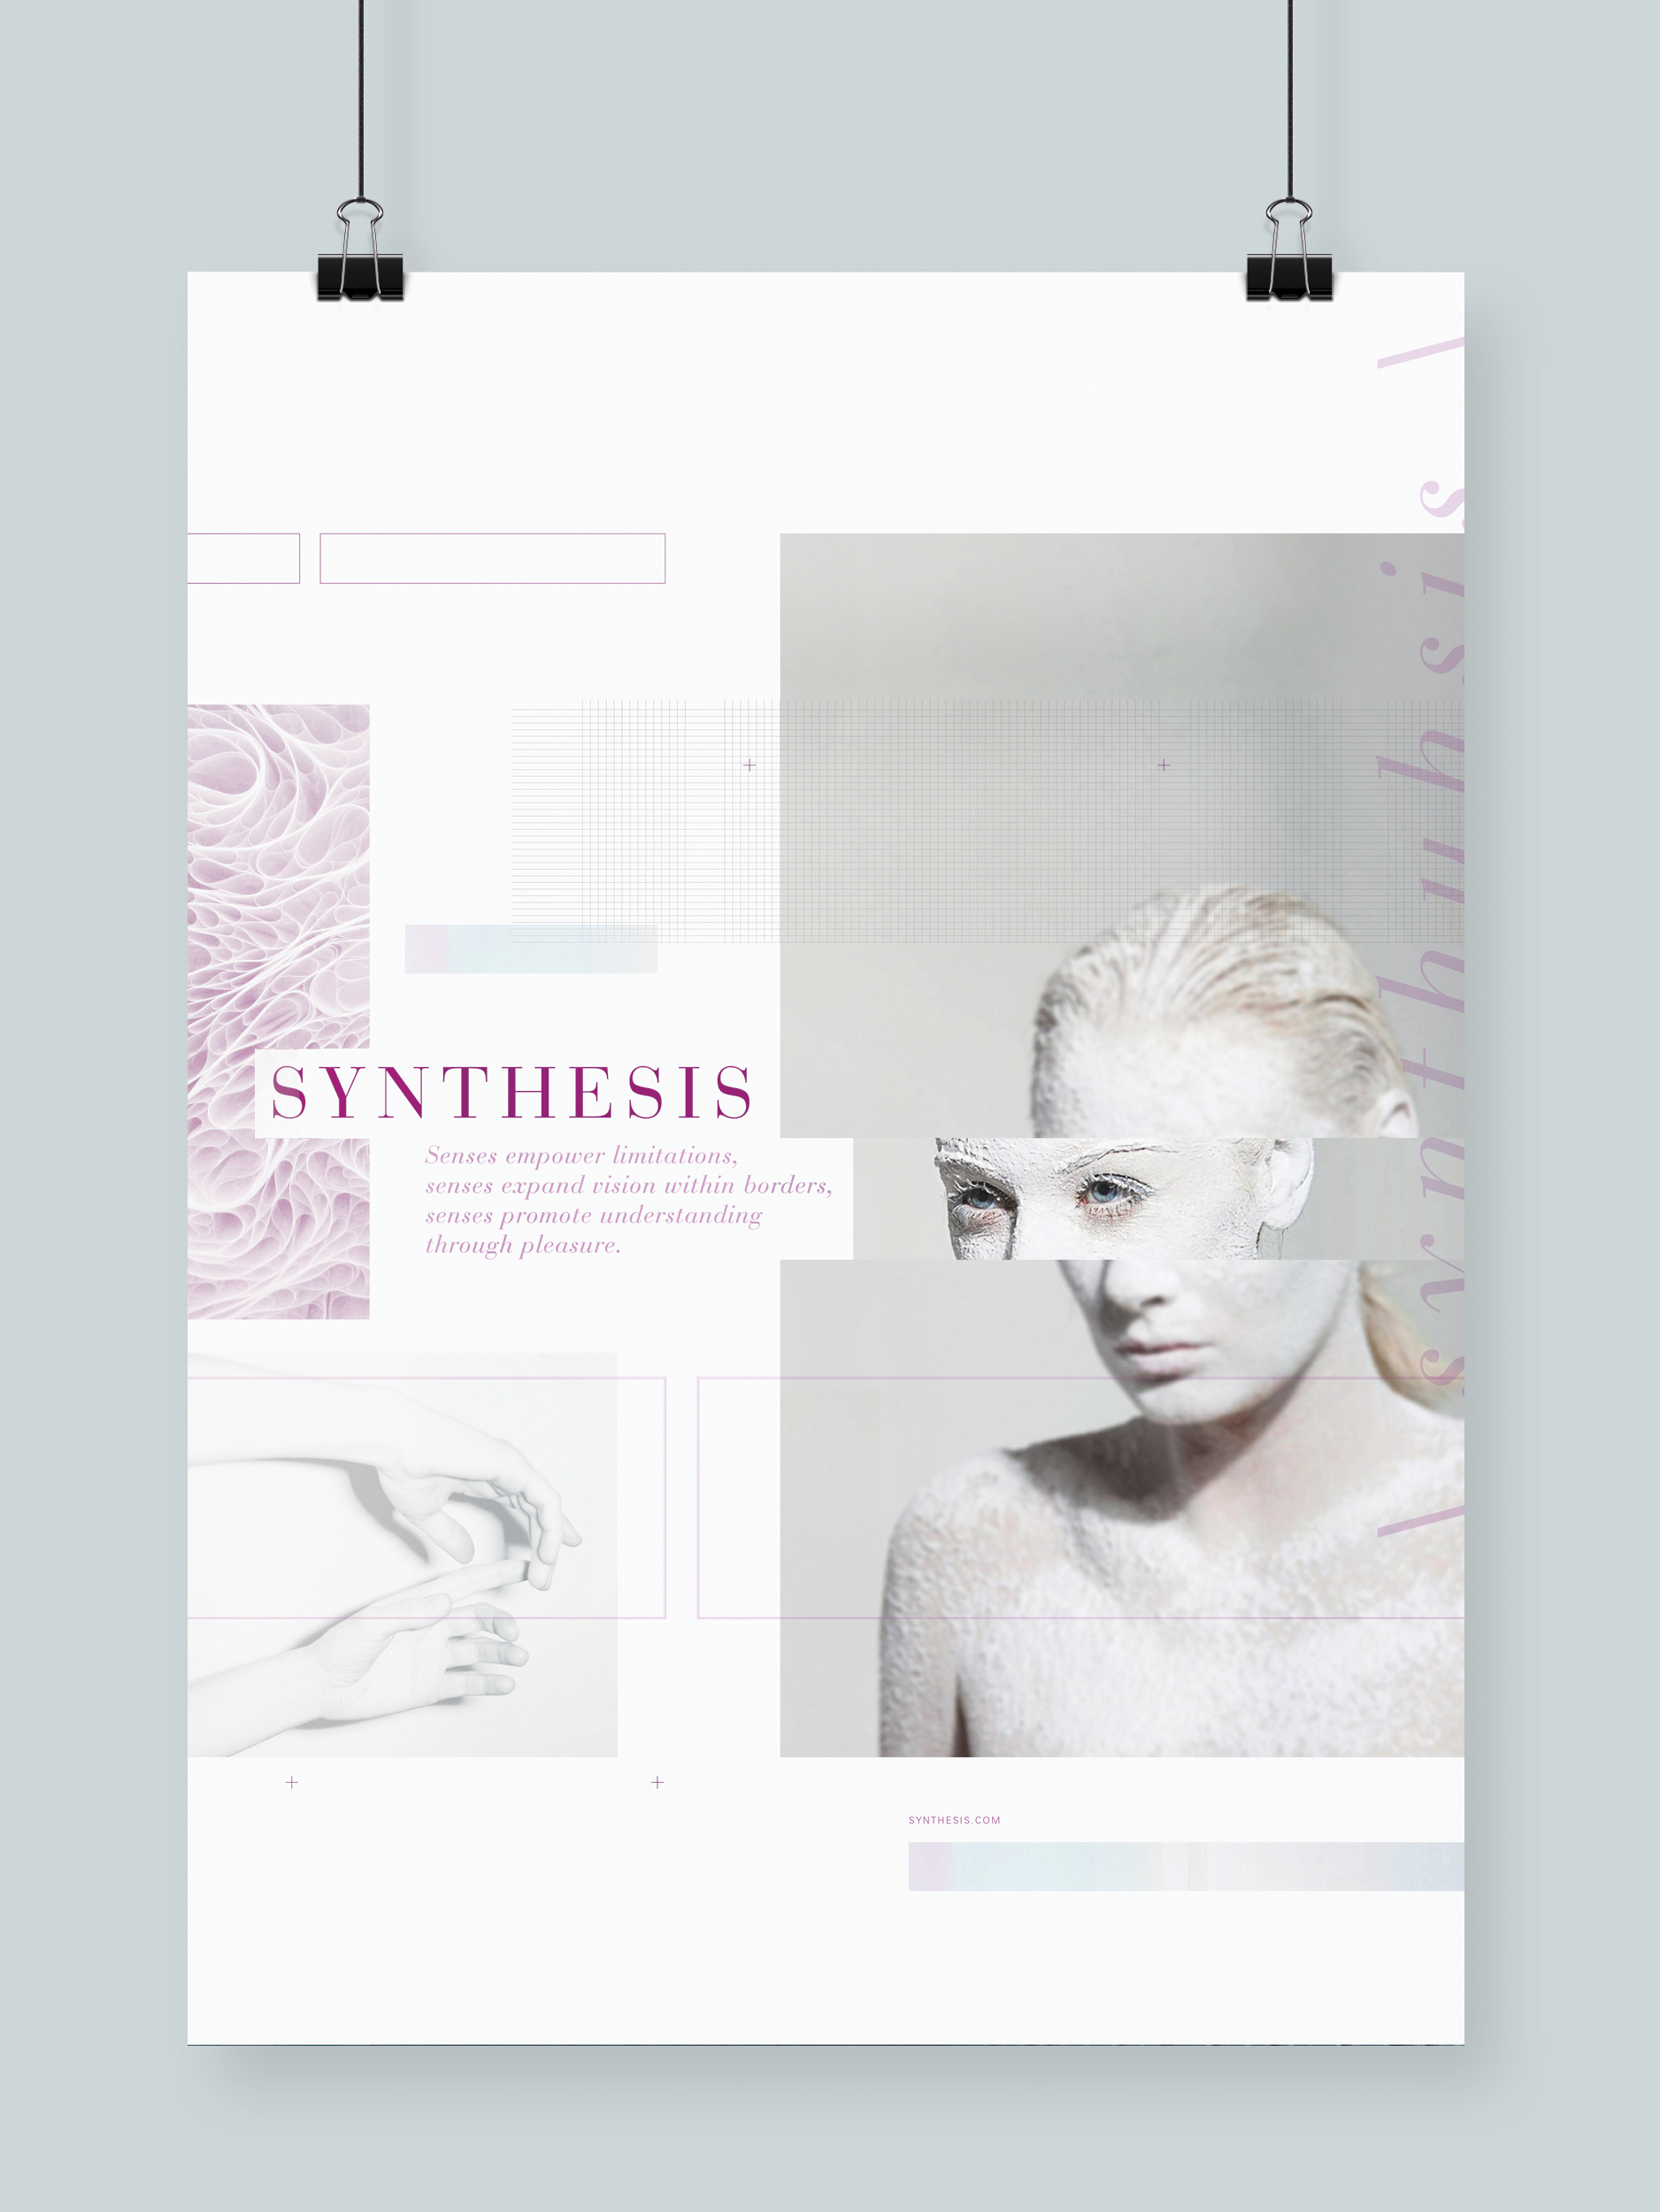 Synthesis7.jpg